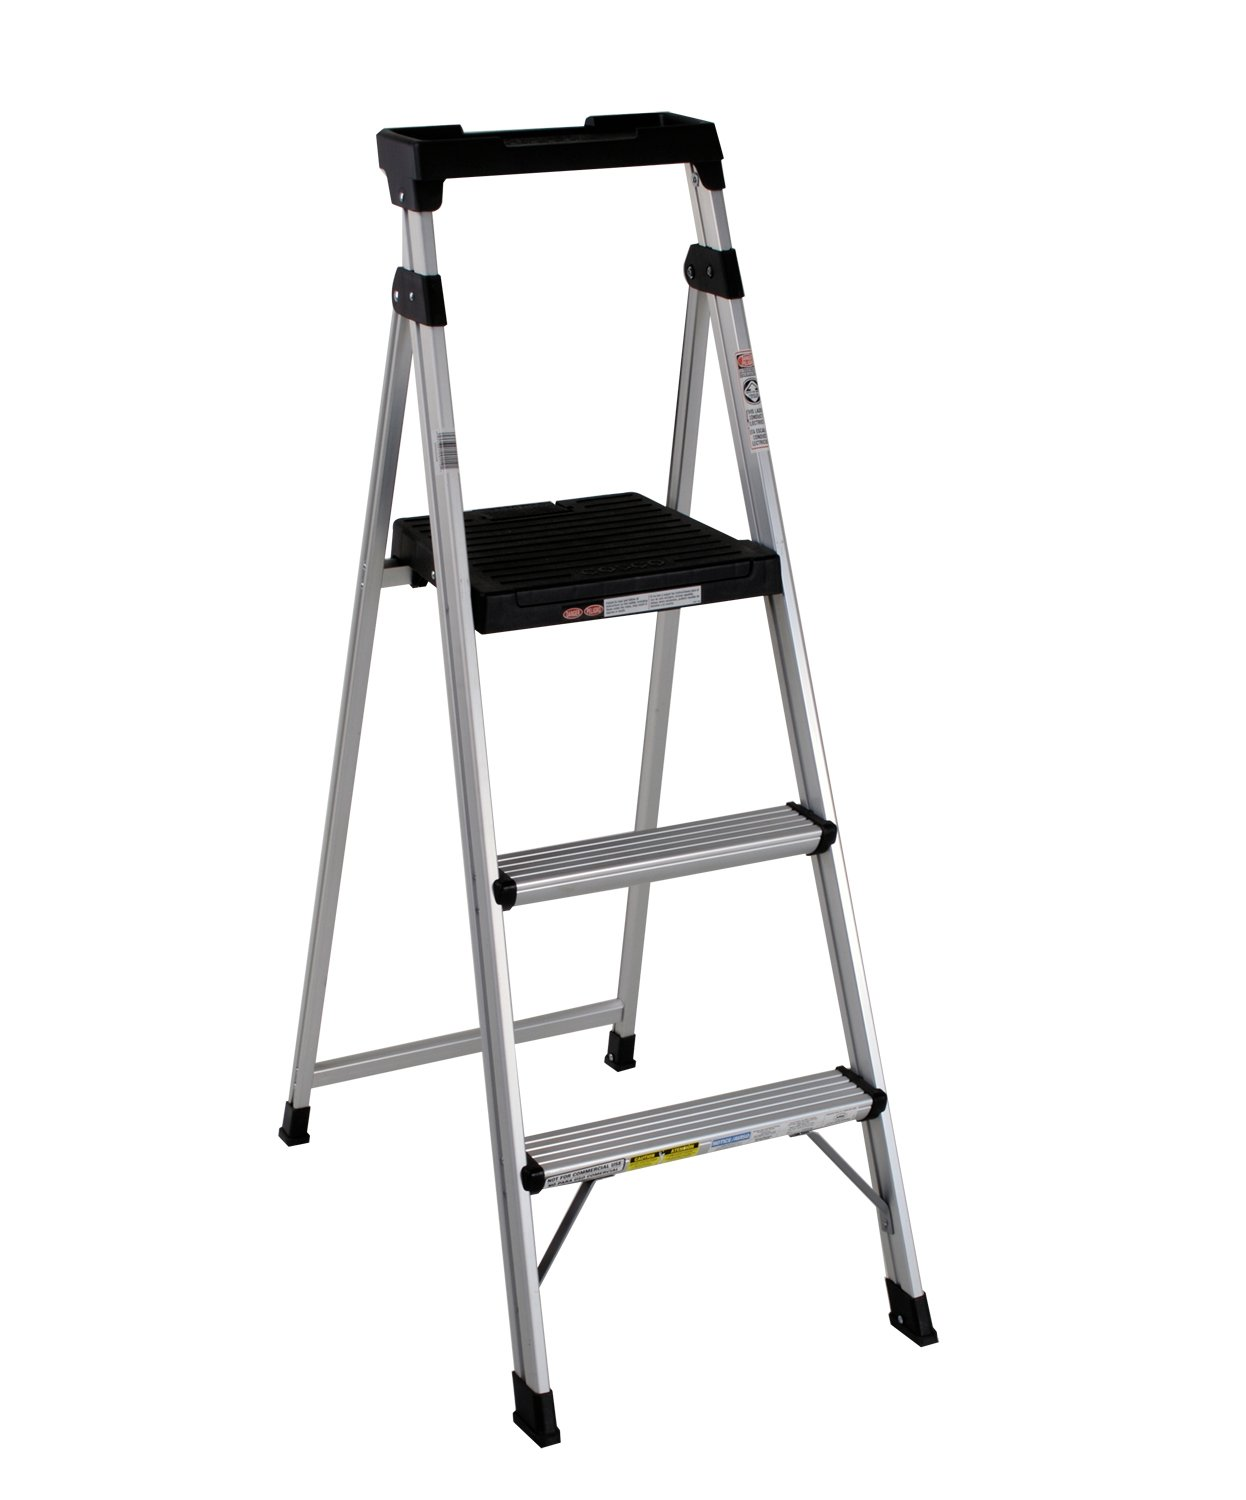 Cosco Three Step 5' Lite Solutions Folding Step Ladder